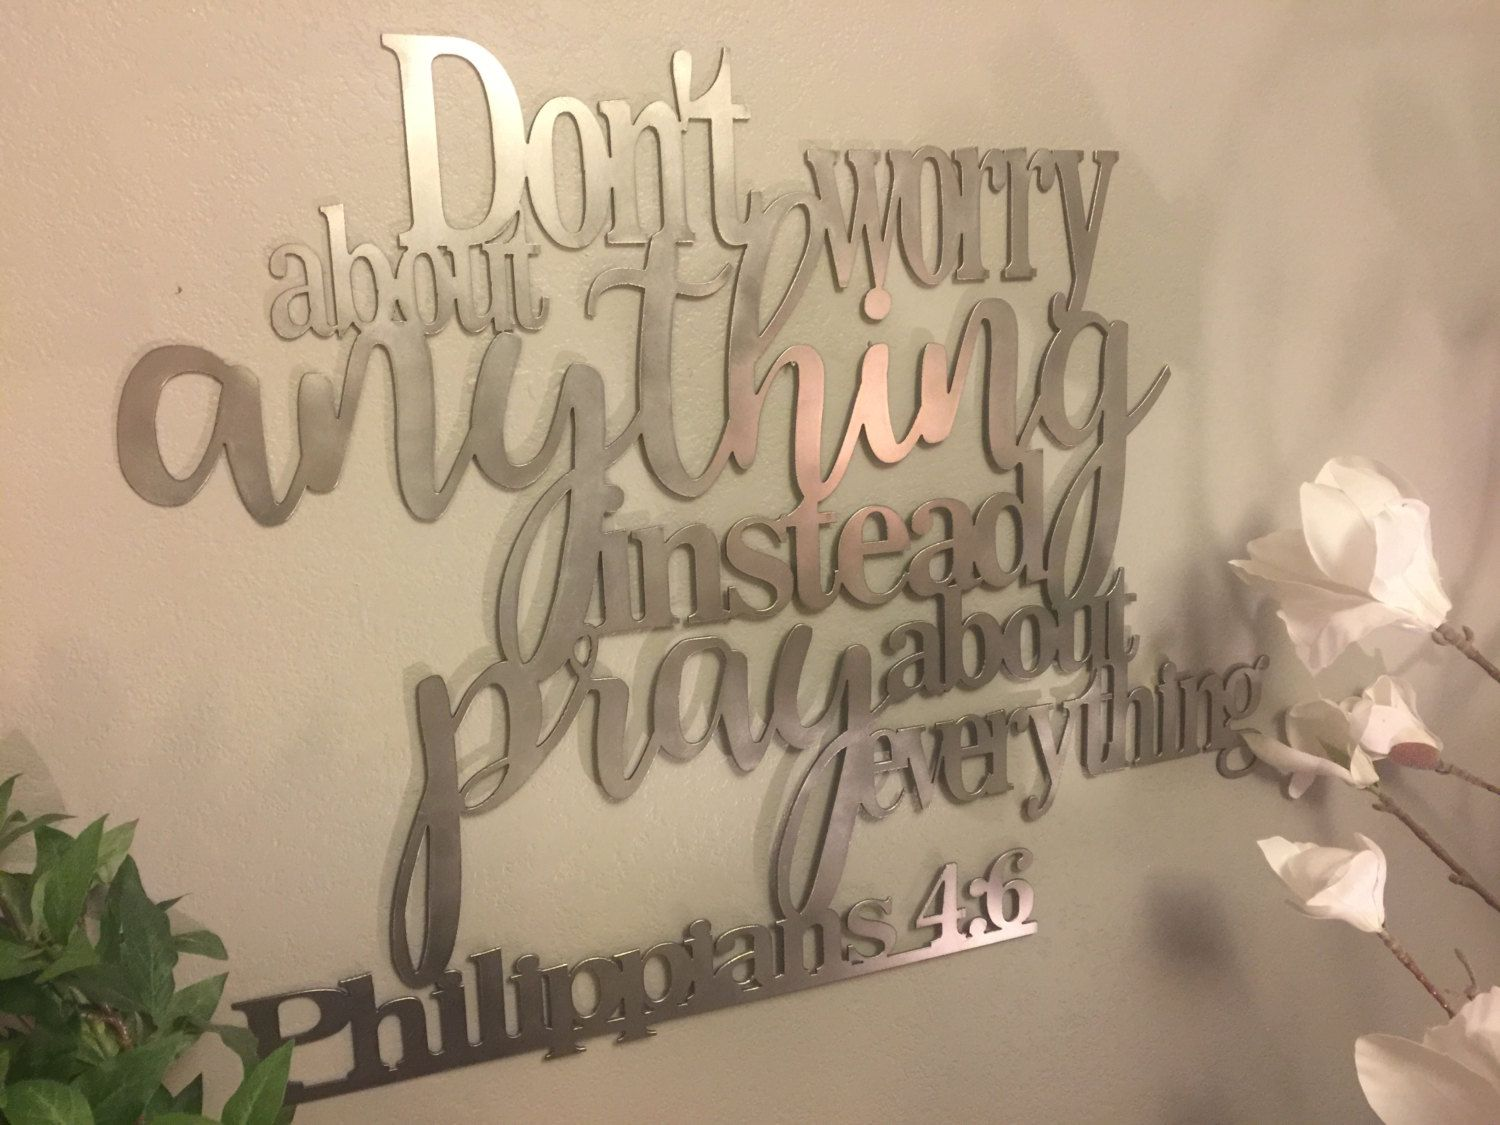 Pin By Tammy Roth On Metal Work Bible Verse Canvas Black Metal Wall Art Outdoor Wall Art